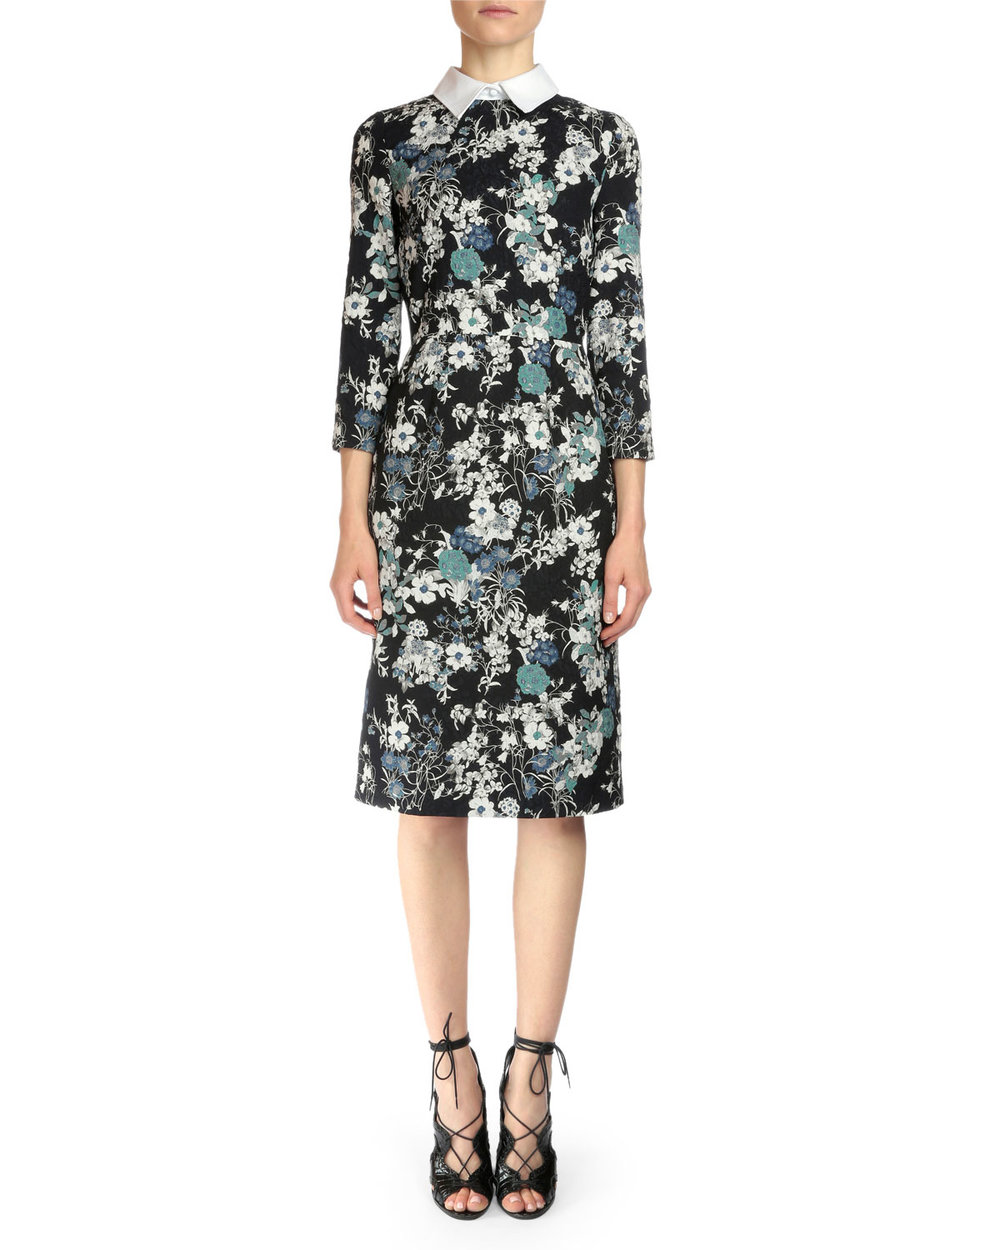 erdem-blackblue-viv-collared-bracelet-sleeve-dress-black-product-0-047111943-normal.jpeg